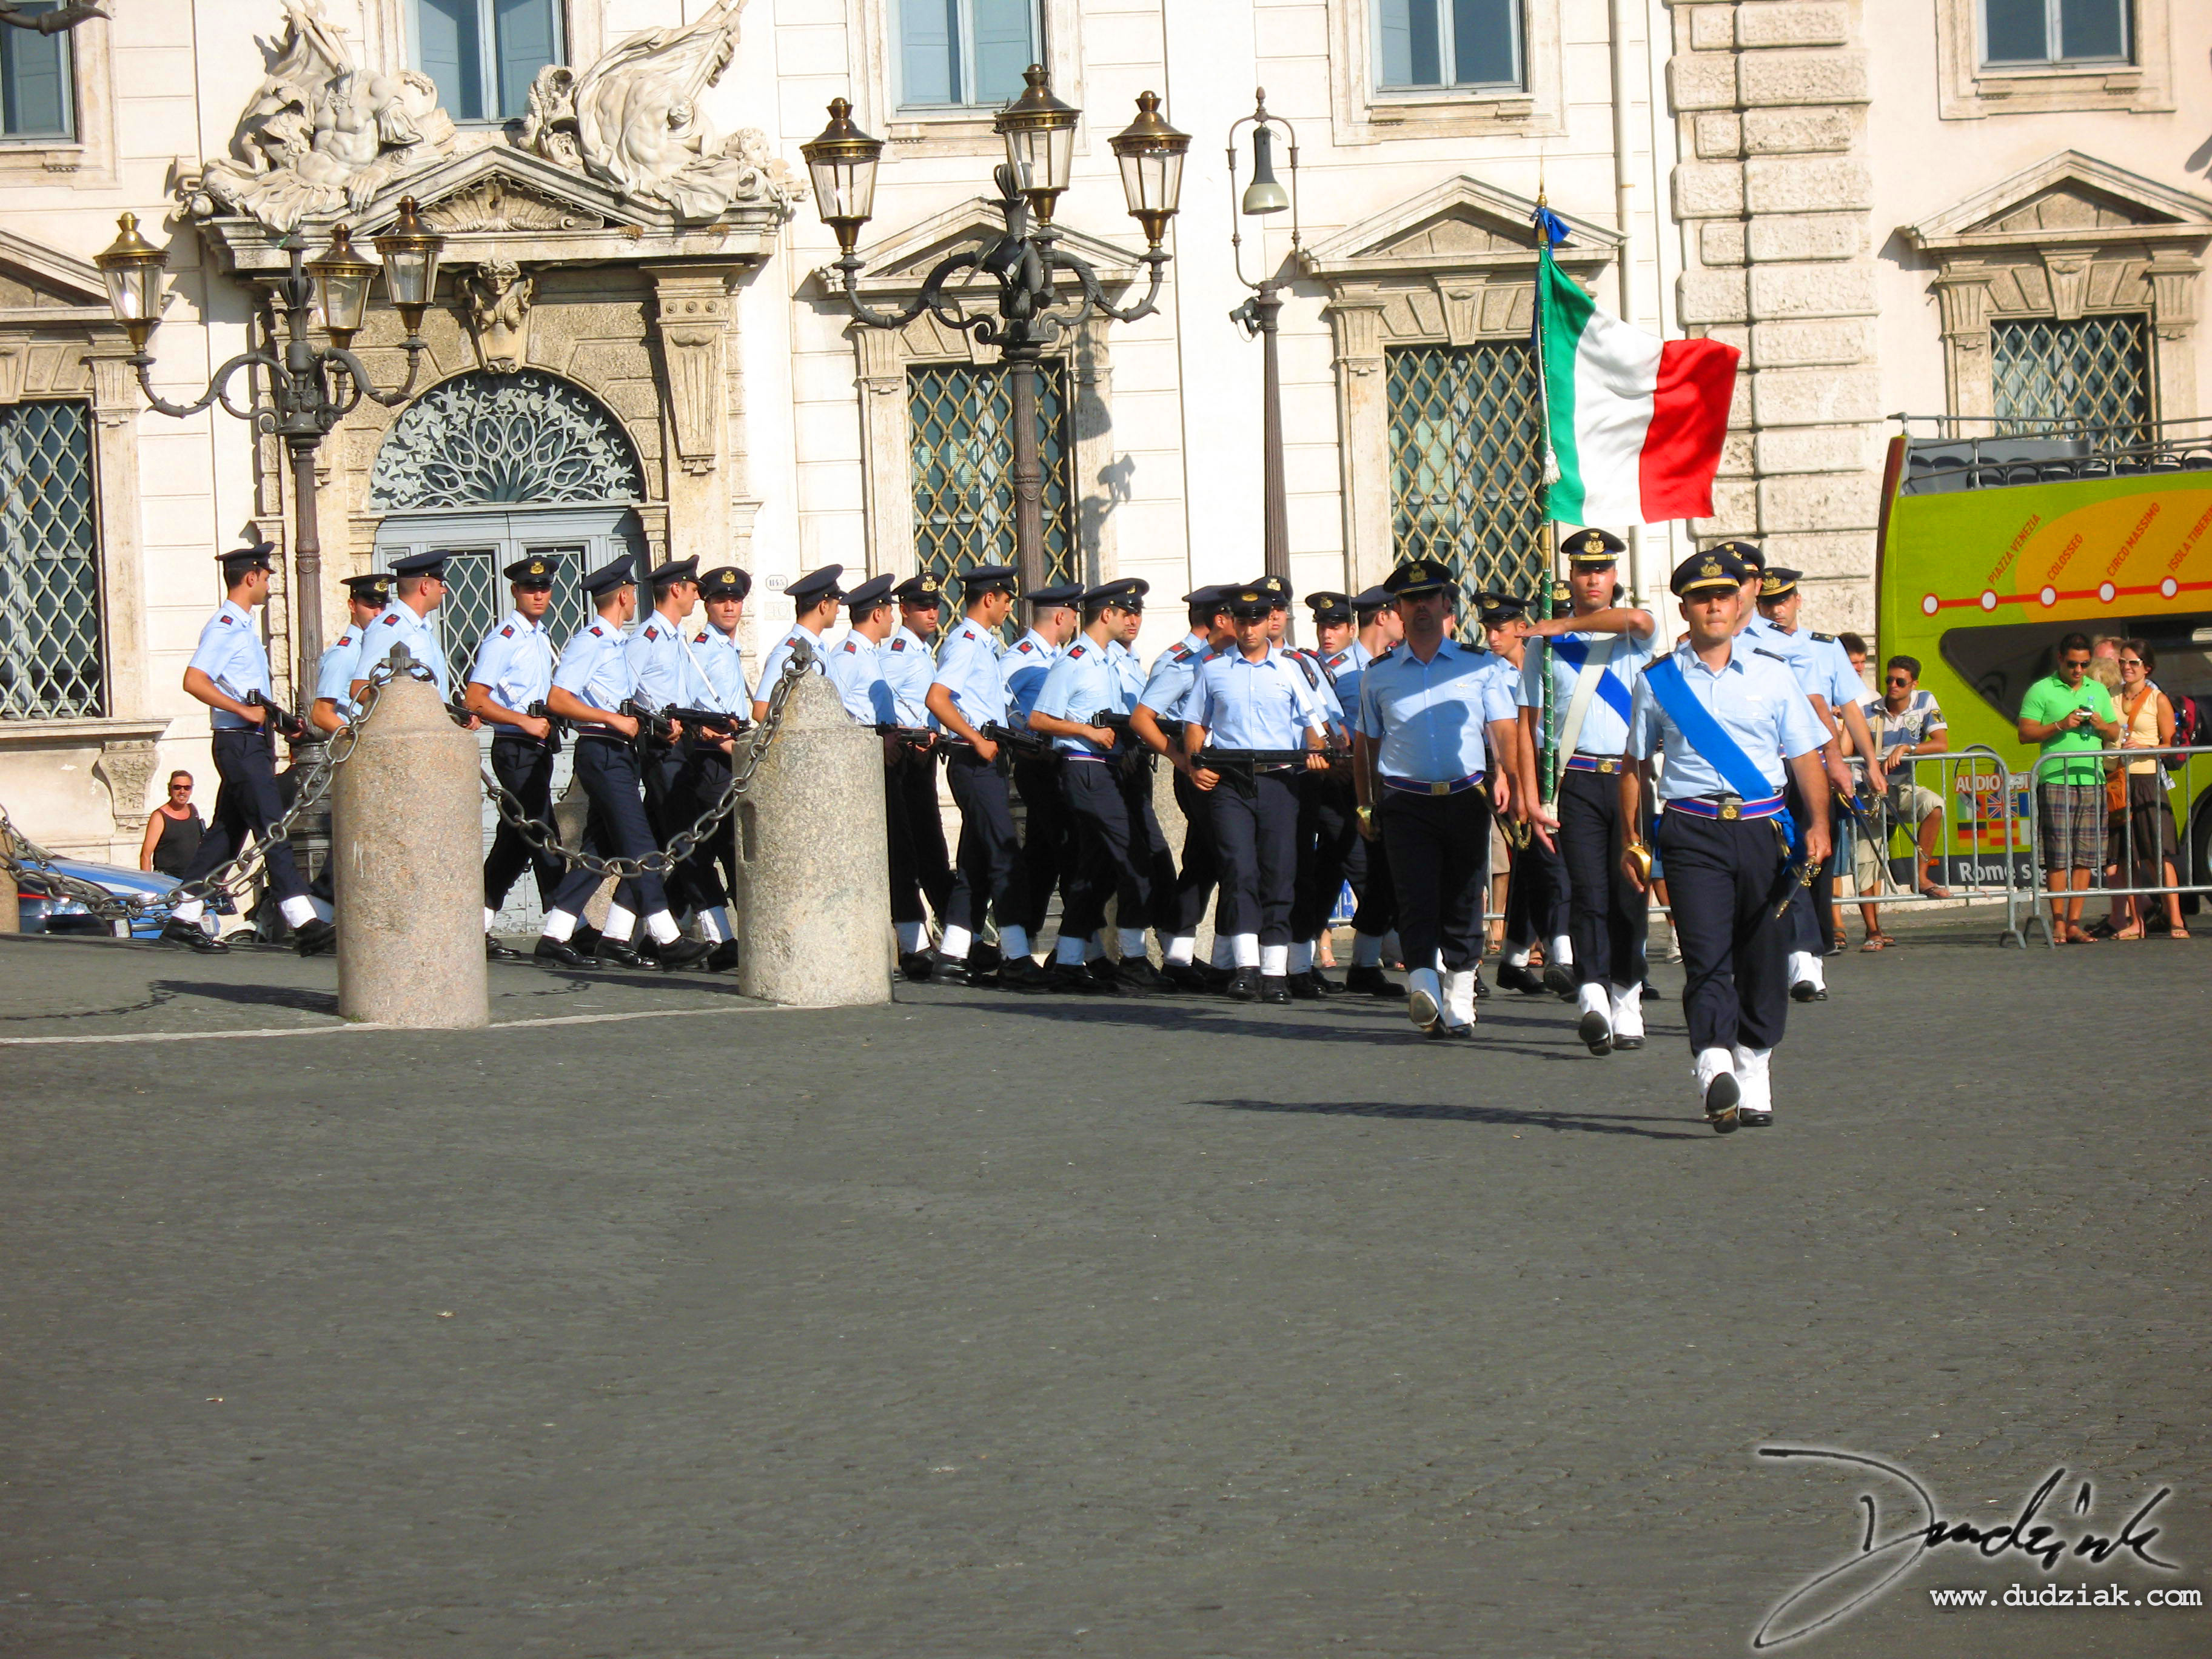 Italian Soldiers,  Palazzo Quirinale,  Roma,  changing of the guard,  Italy,  soldiers,  Rome